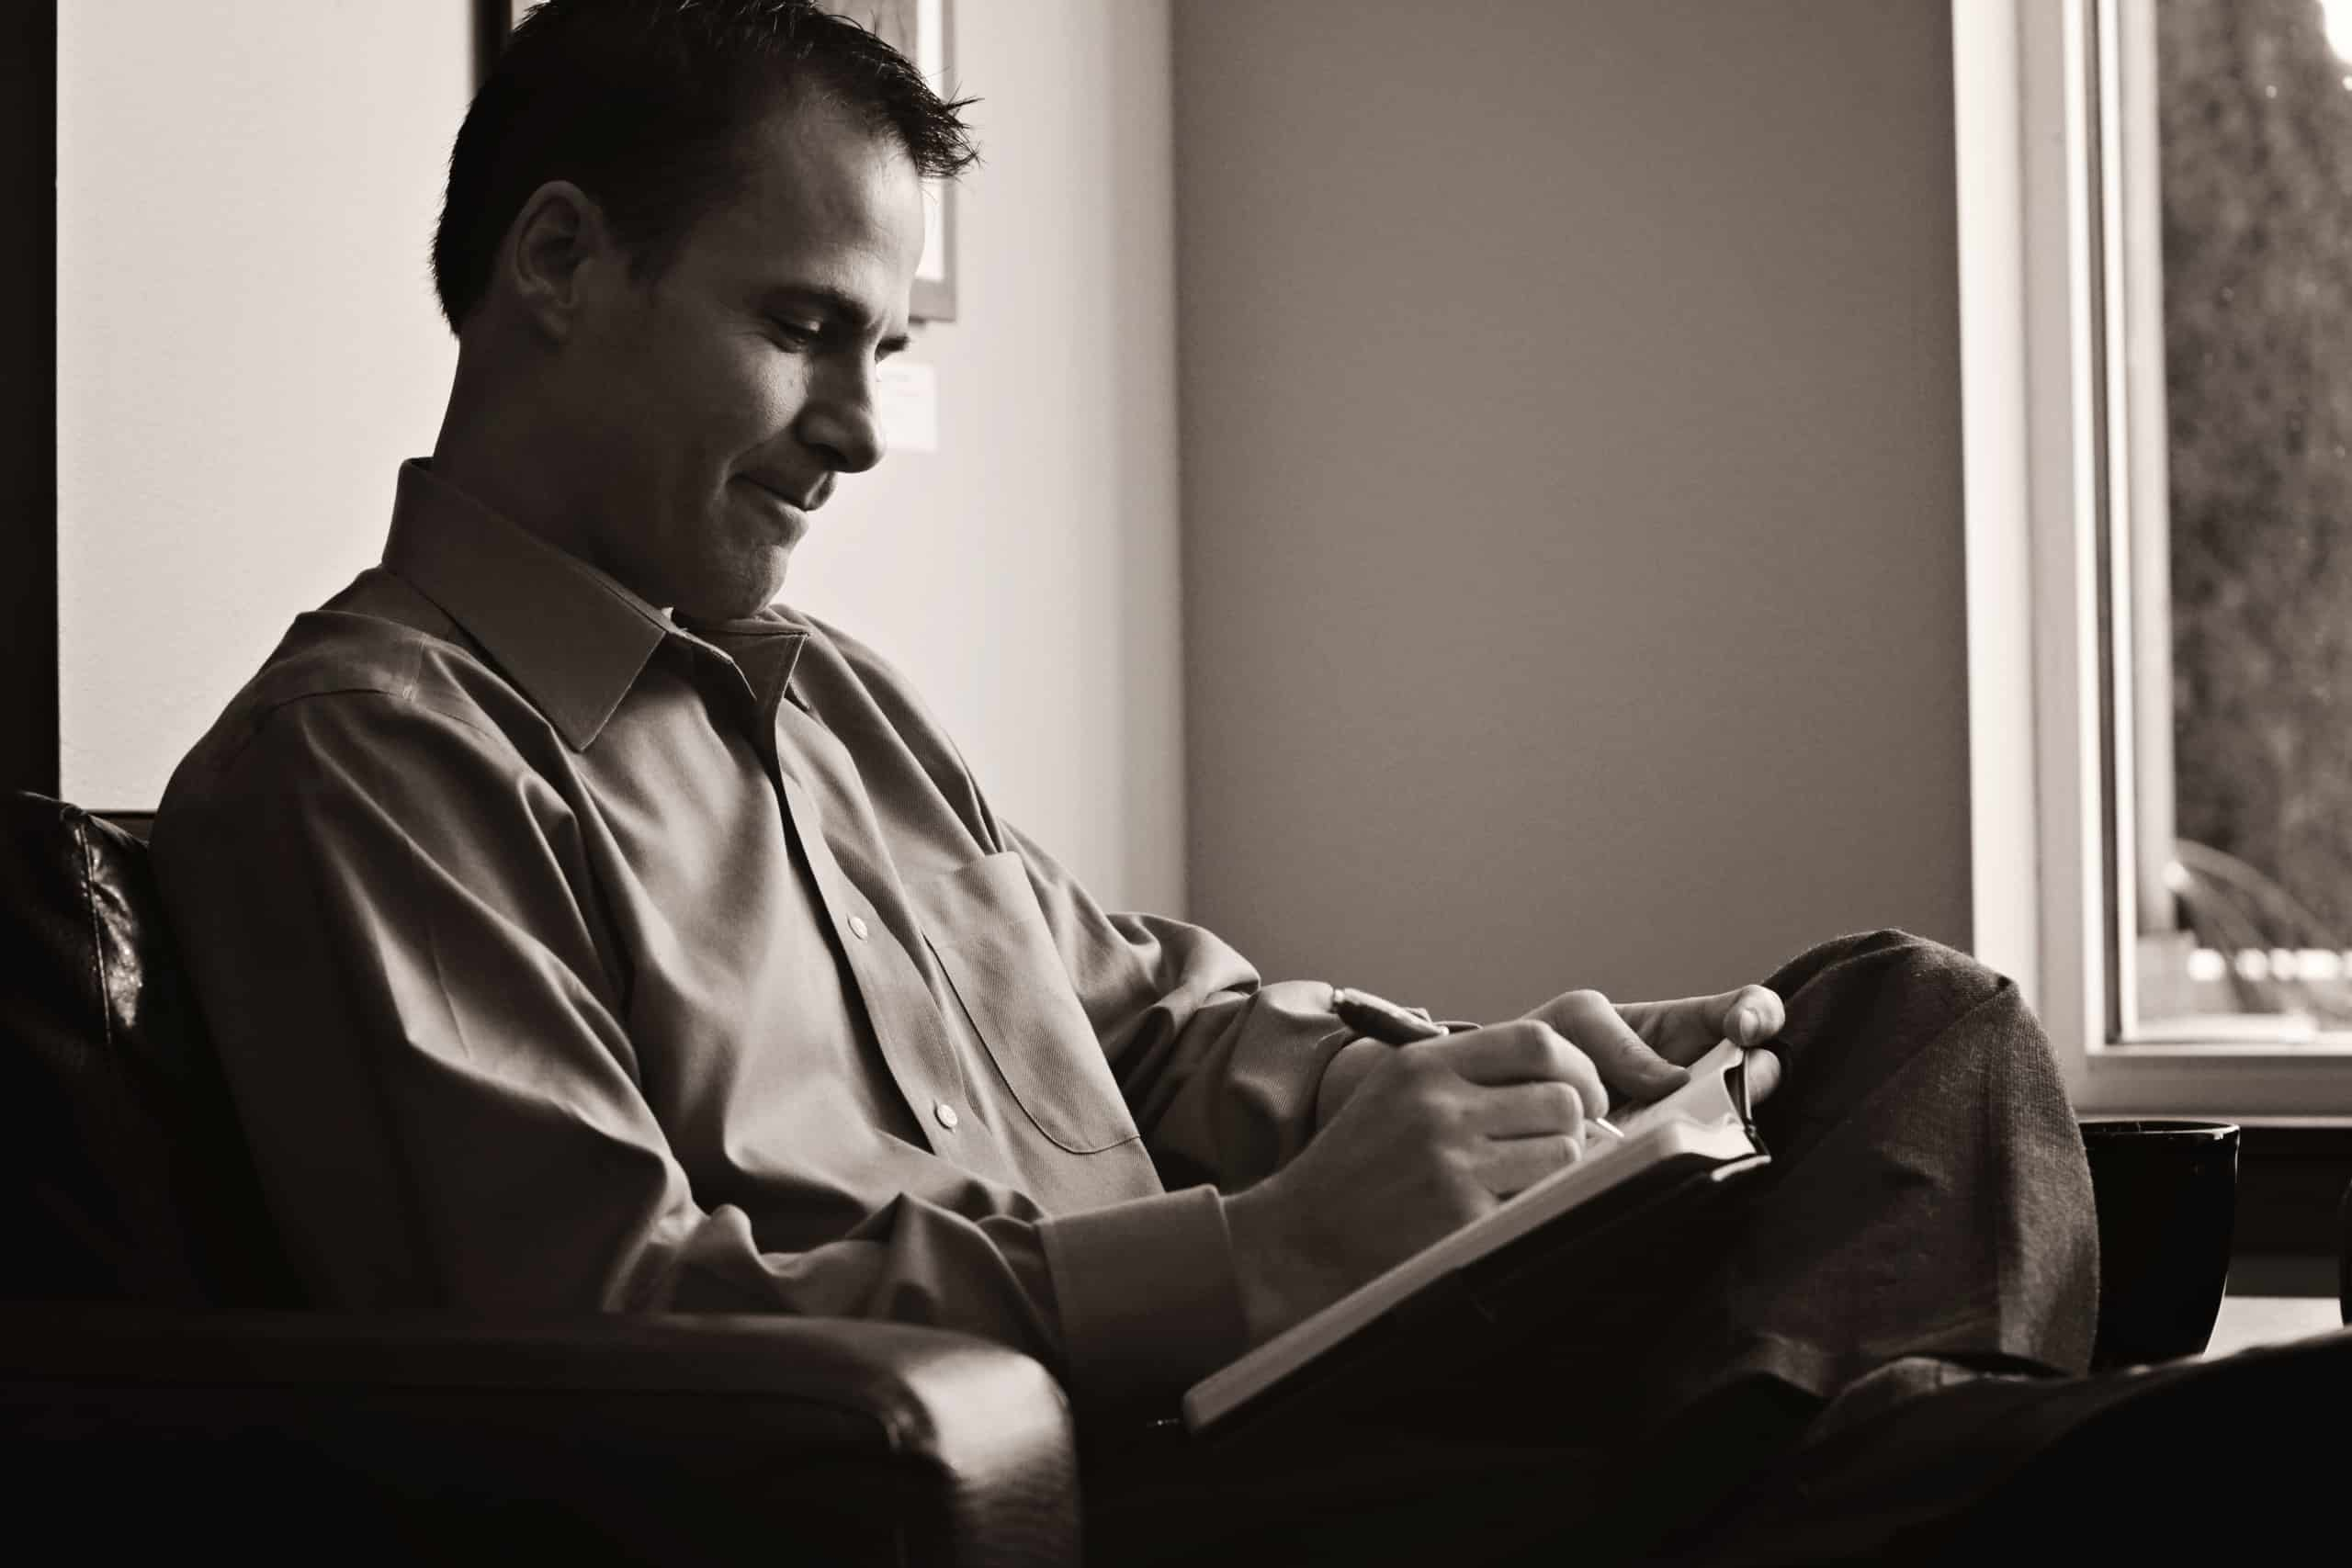 A black and white photo of Steve writing in a note book